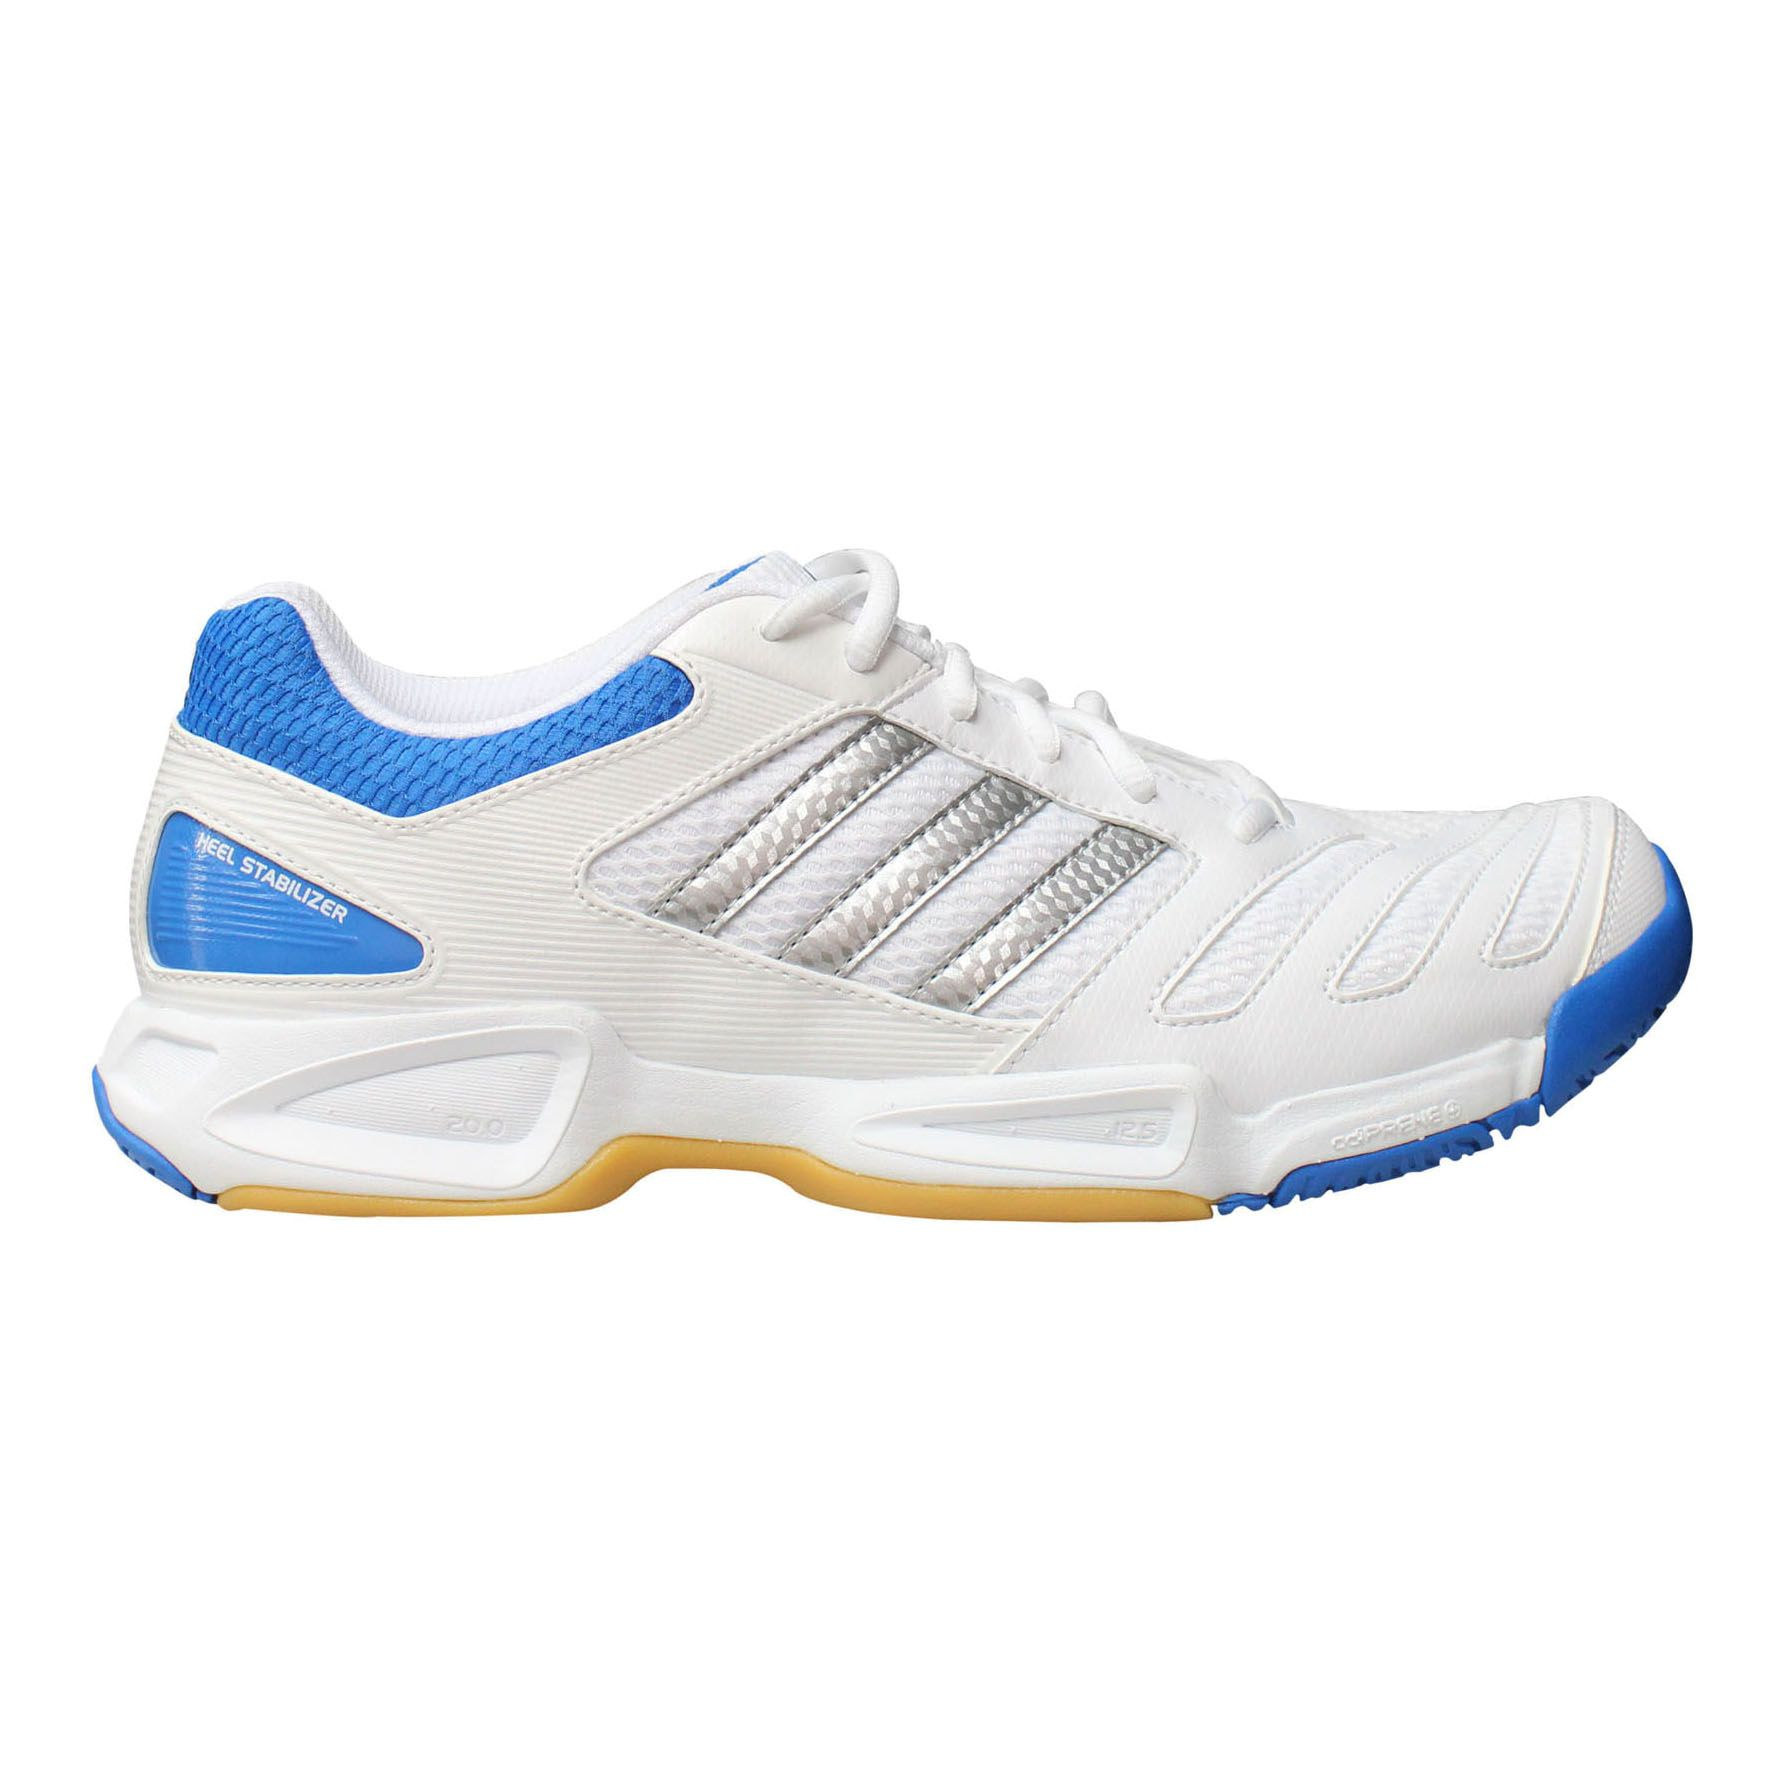 Adidas Bt Feather Badminton Shoes Review